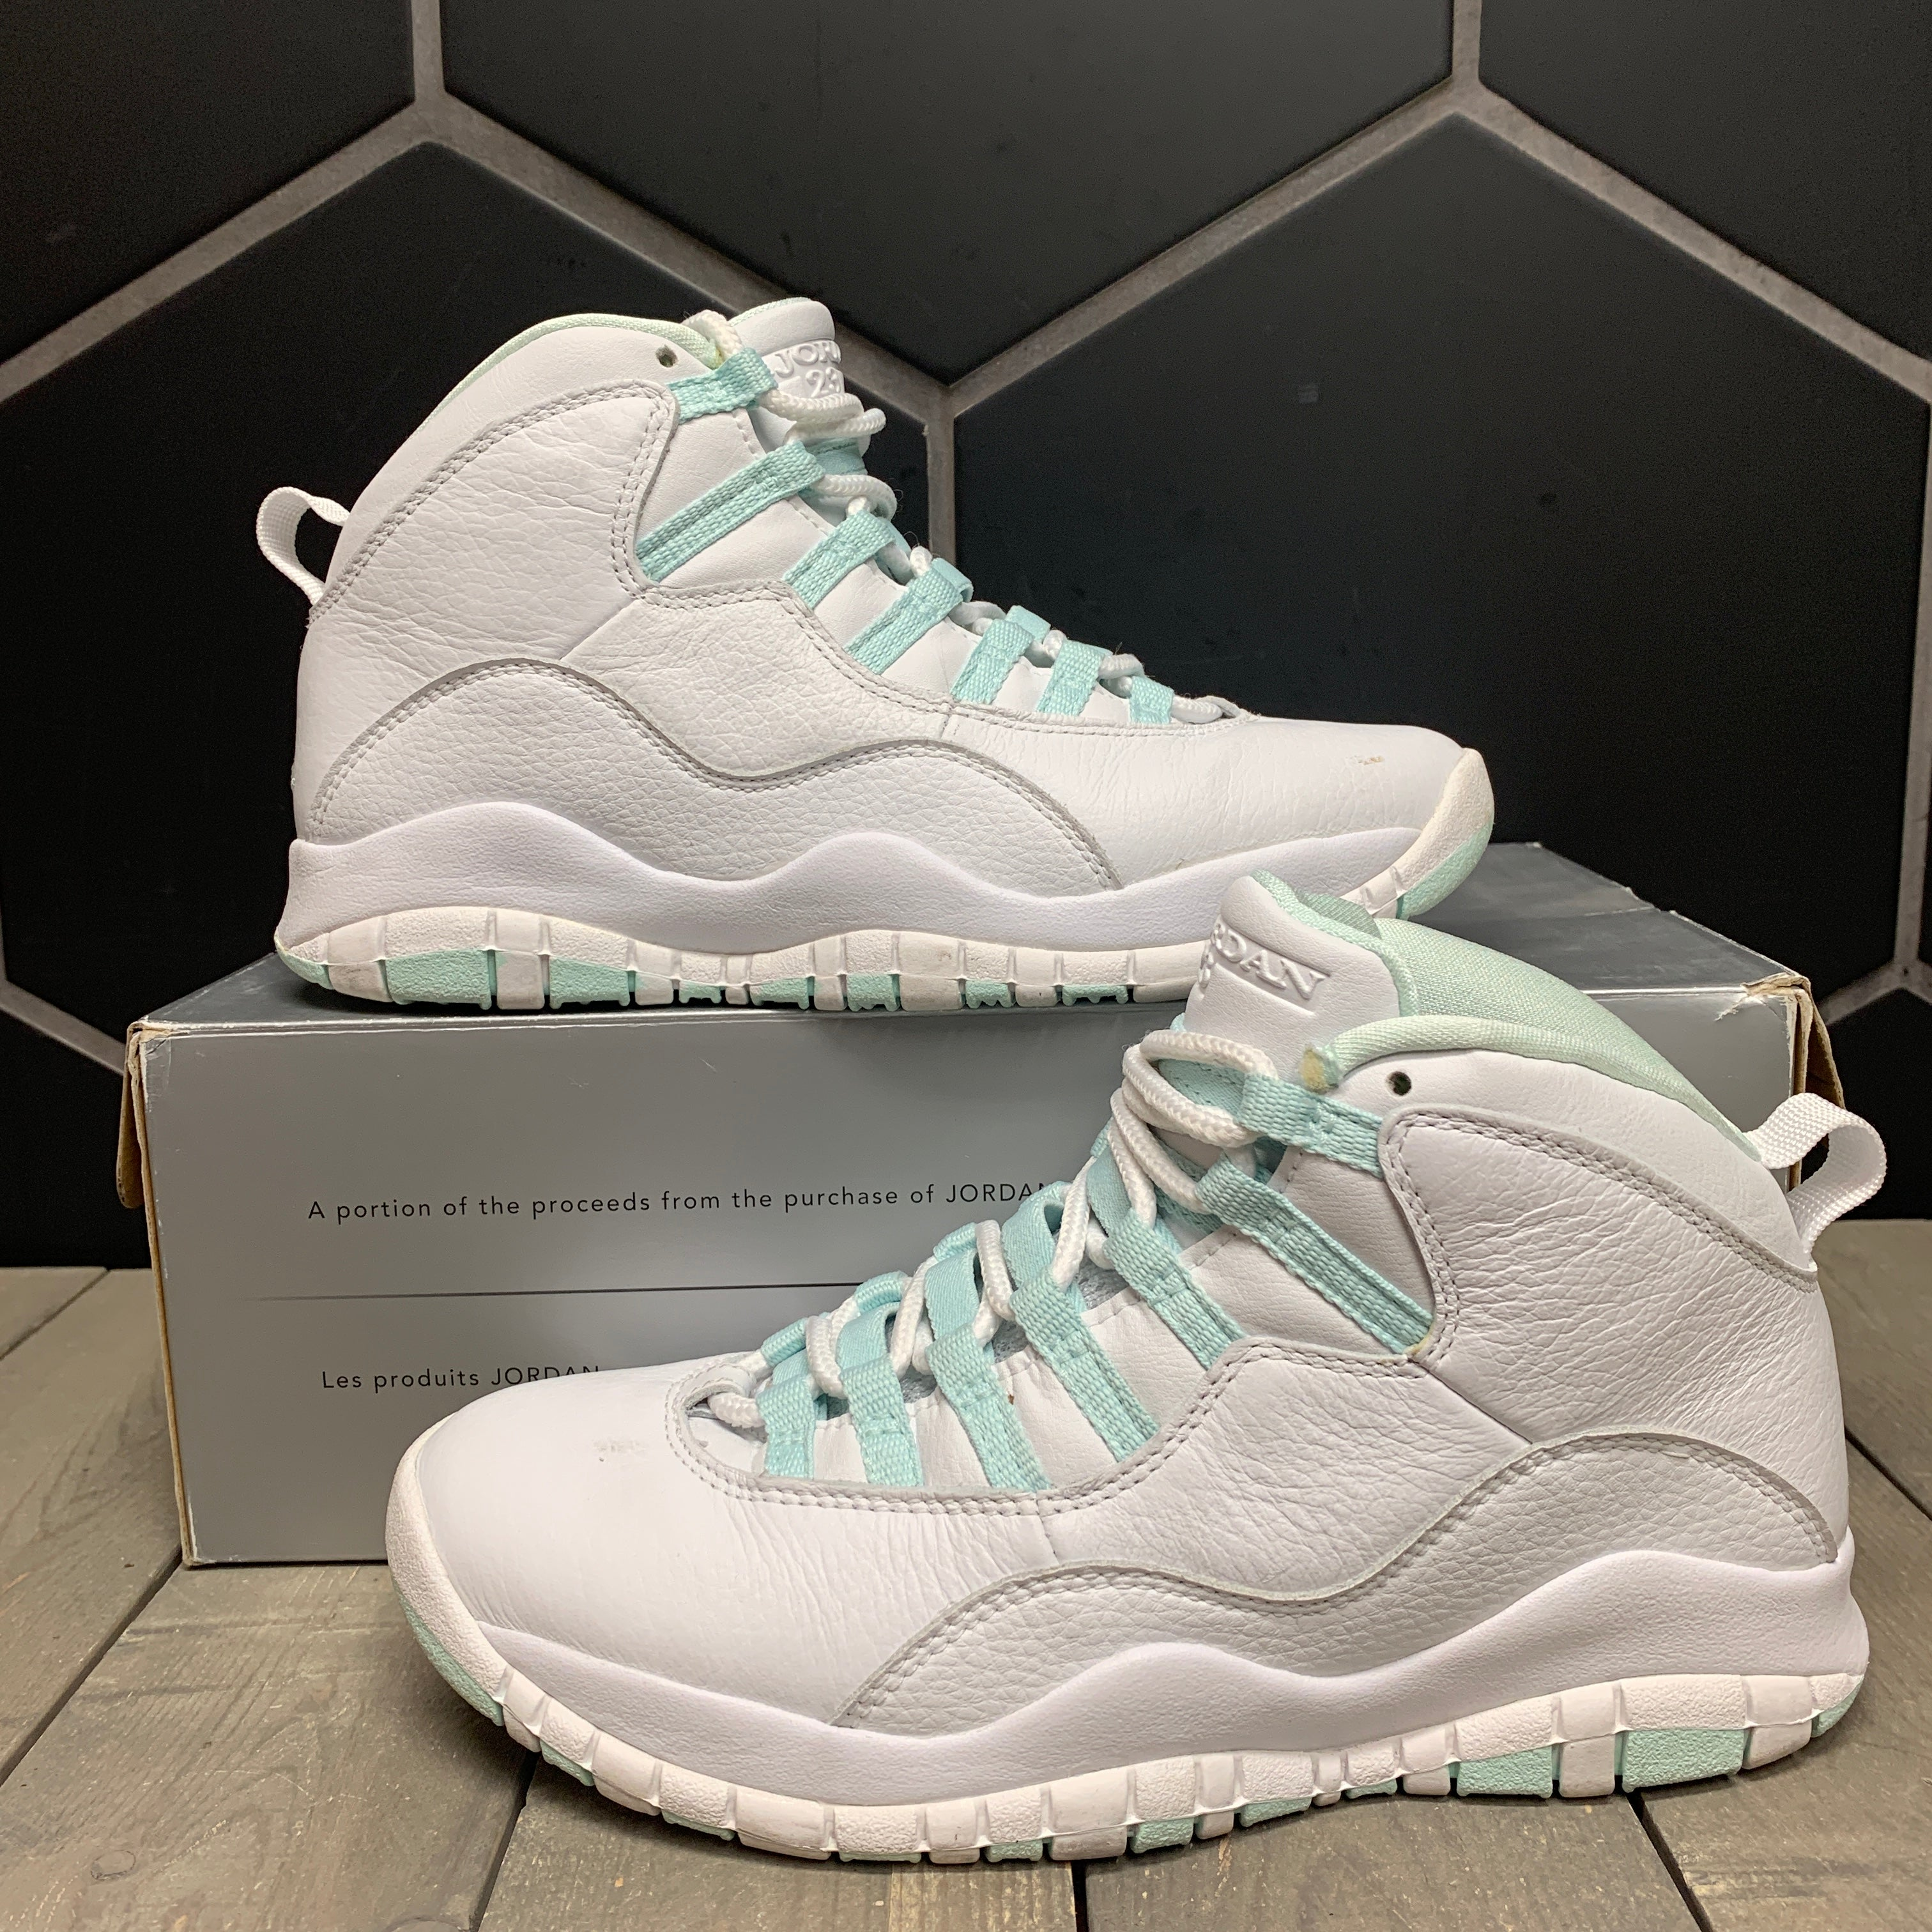 Used W/ Box! Womens Air Jordan 10 Teal Ice White Size 7